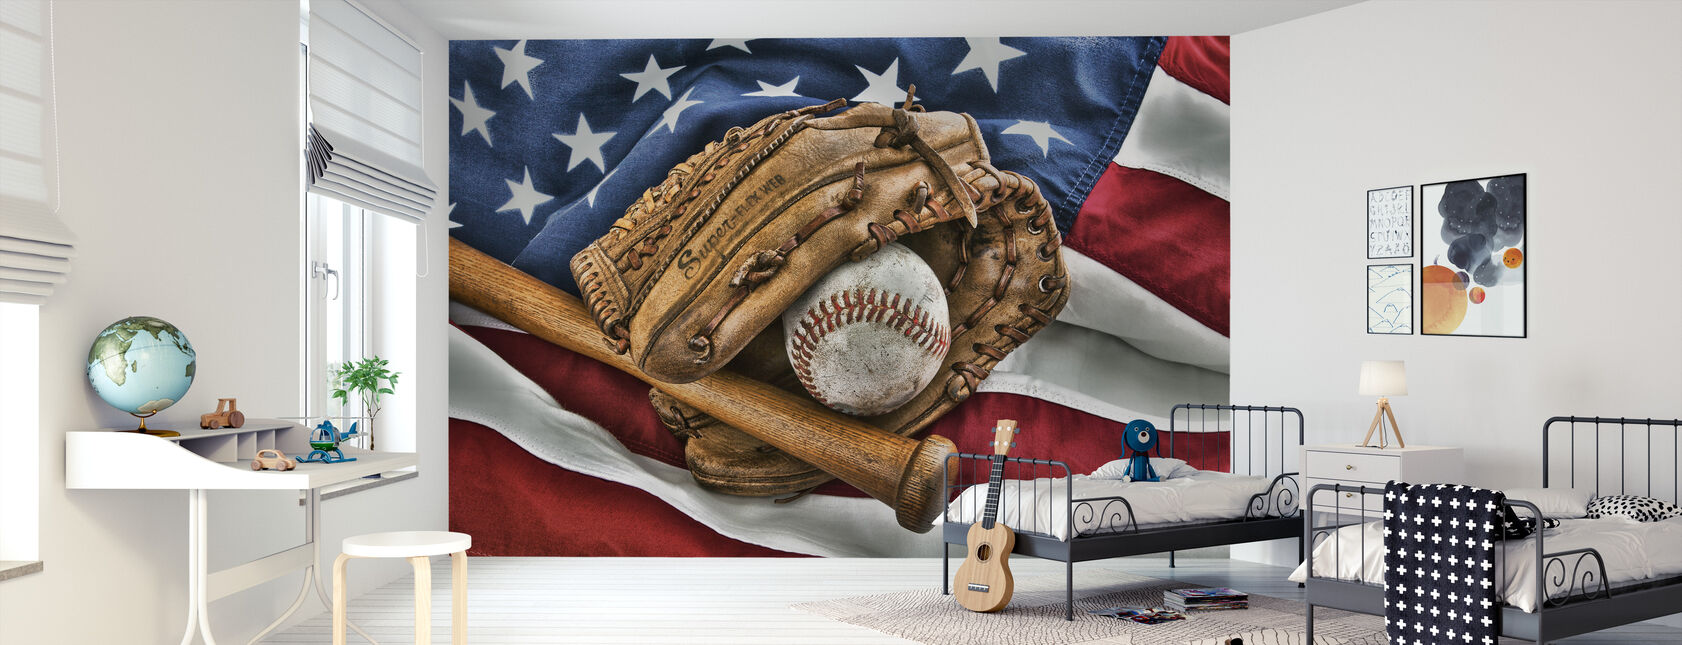 Vintage Baseball Glove - Wallpaper - Kids Room